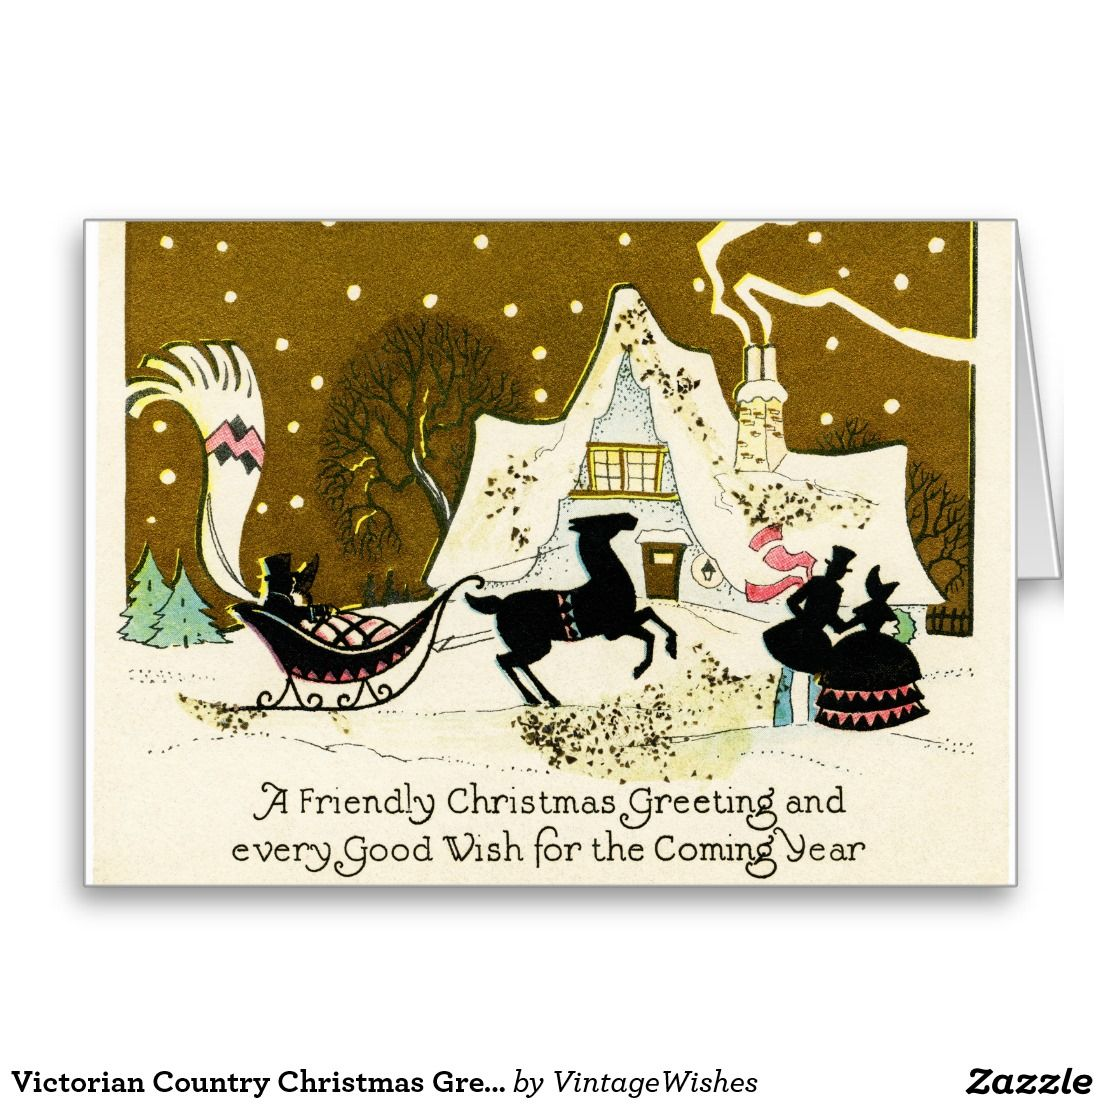 Victorian Country Christmas Greeting Card | Vintage Christmas Wishes ...